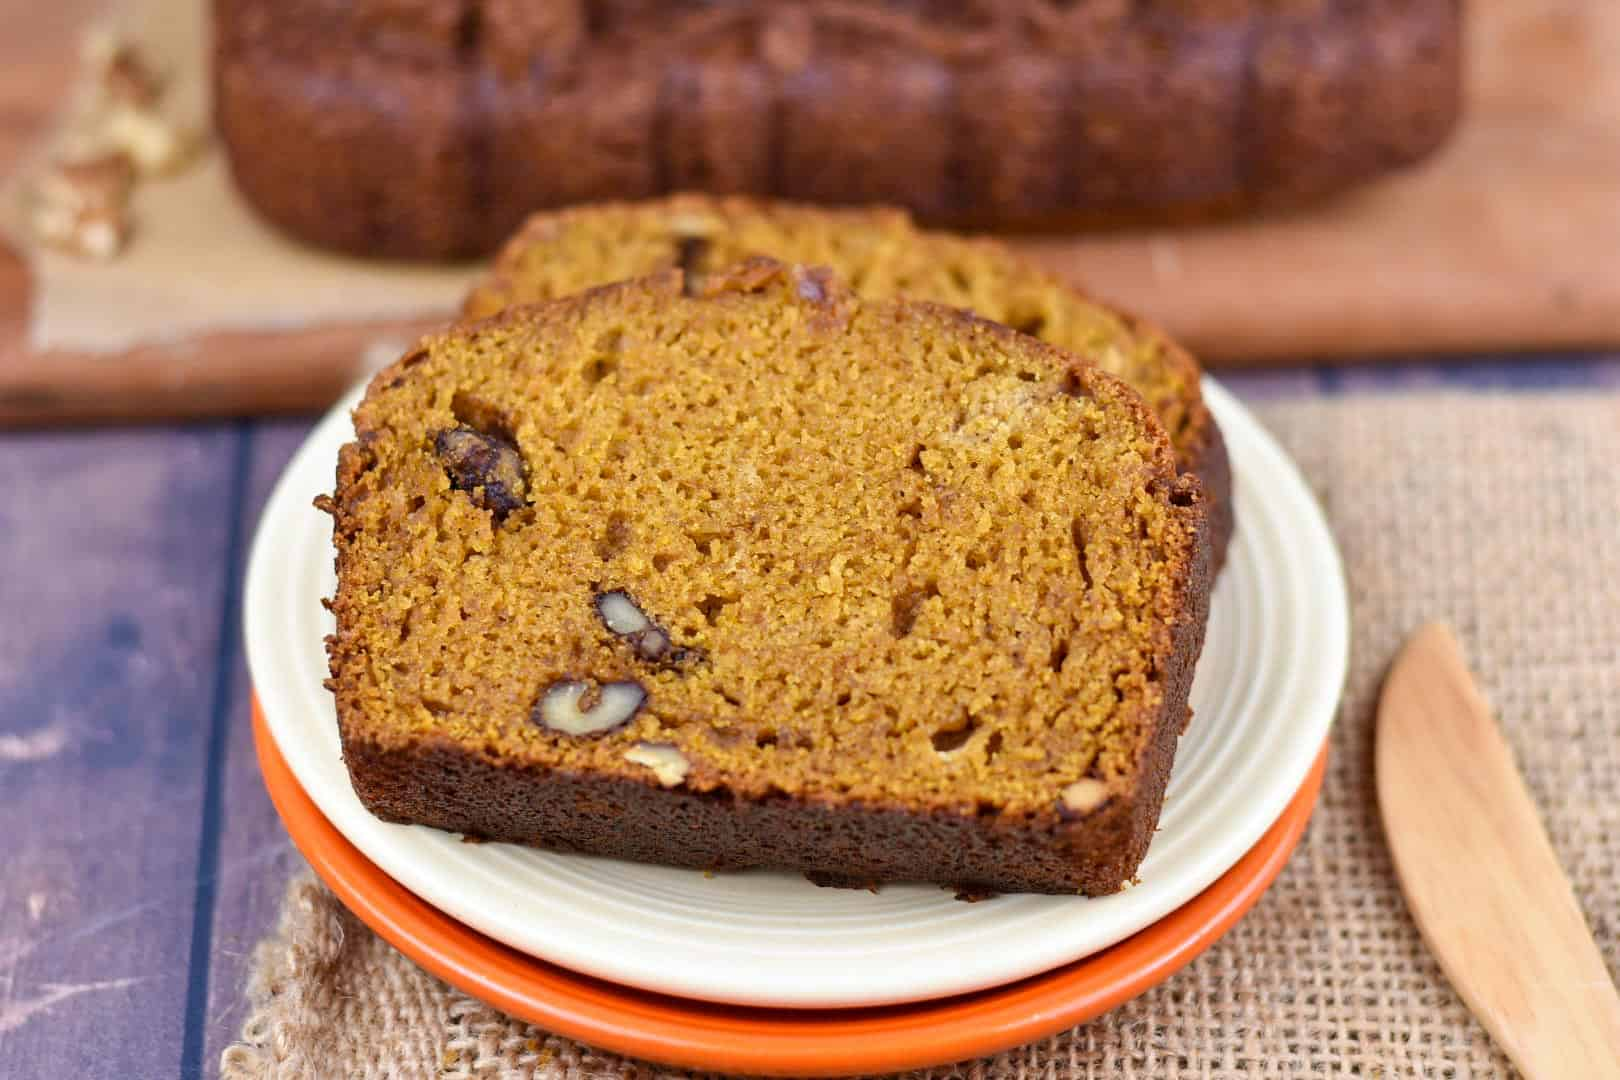 closeup images of two slices of pumpkin walnut bread on a plate